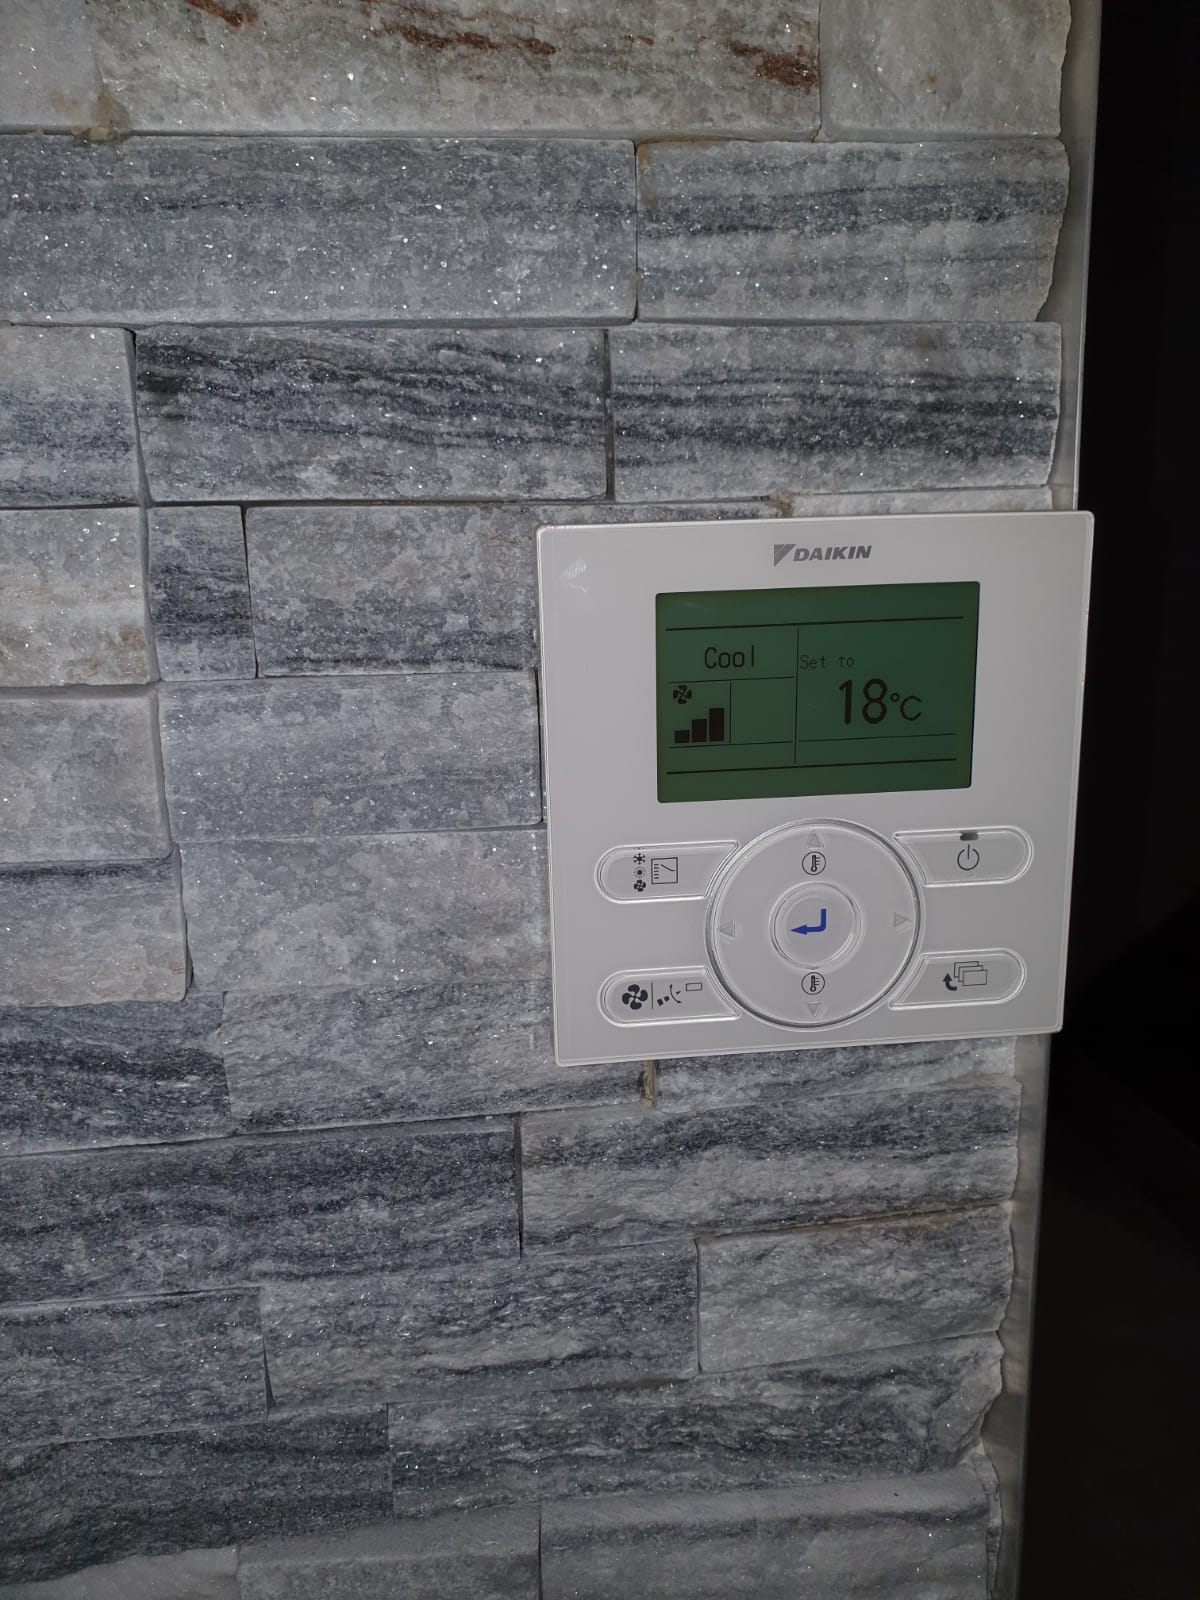 An air conditioning wall controller